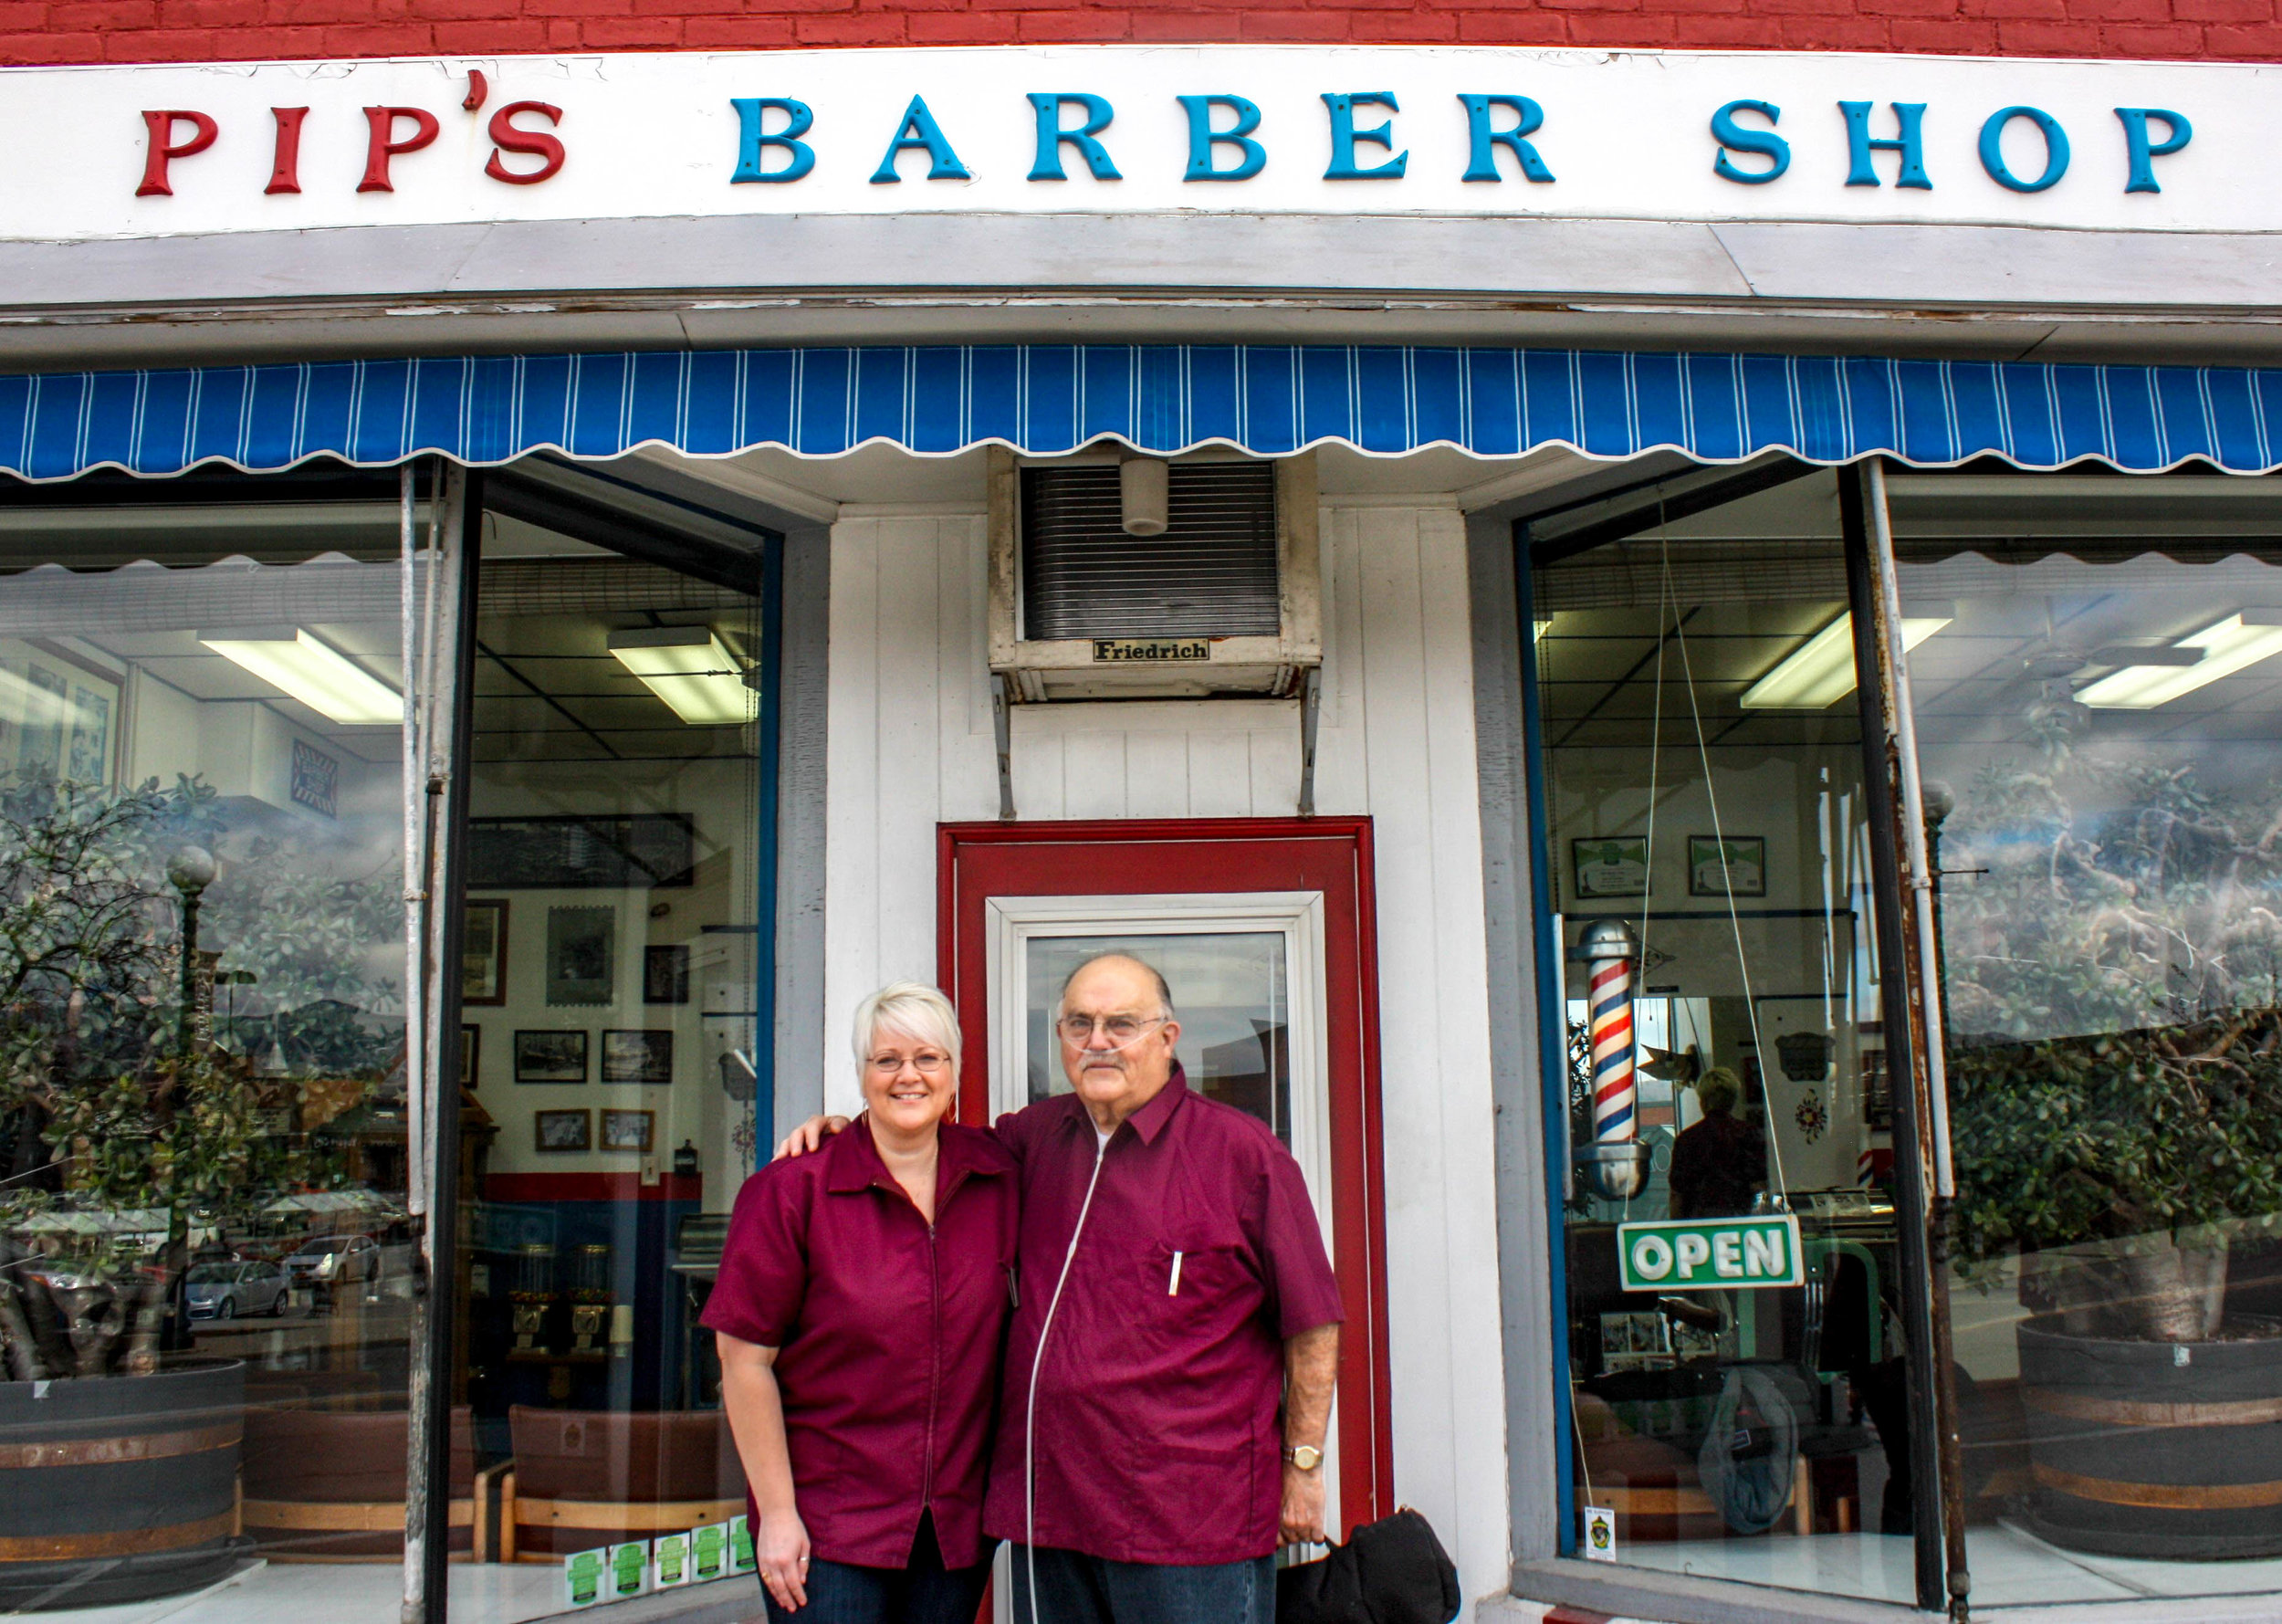 Marty Muscatello and his niece, Jessica Reynolds, stand in front of Pip's.